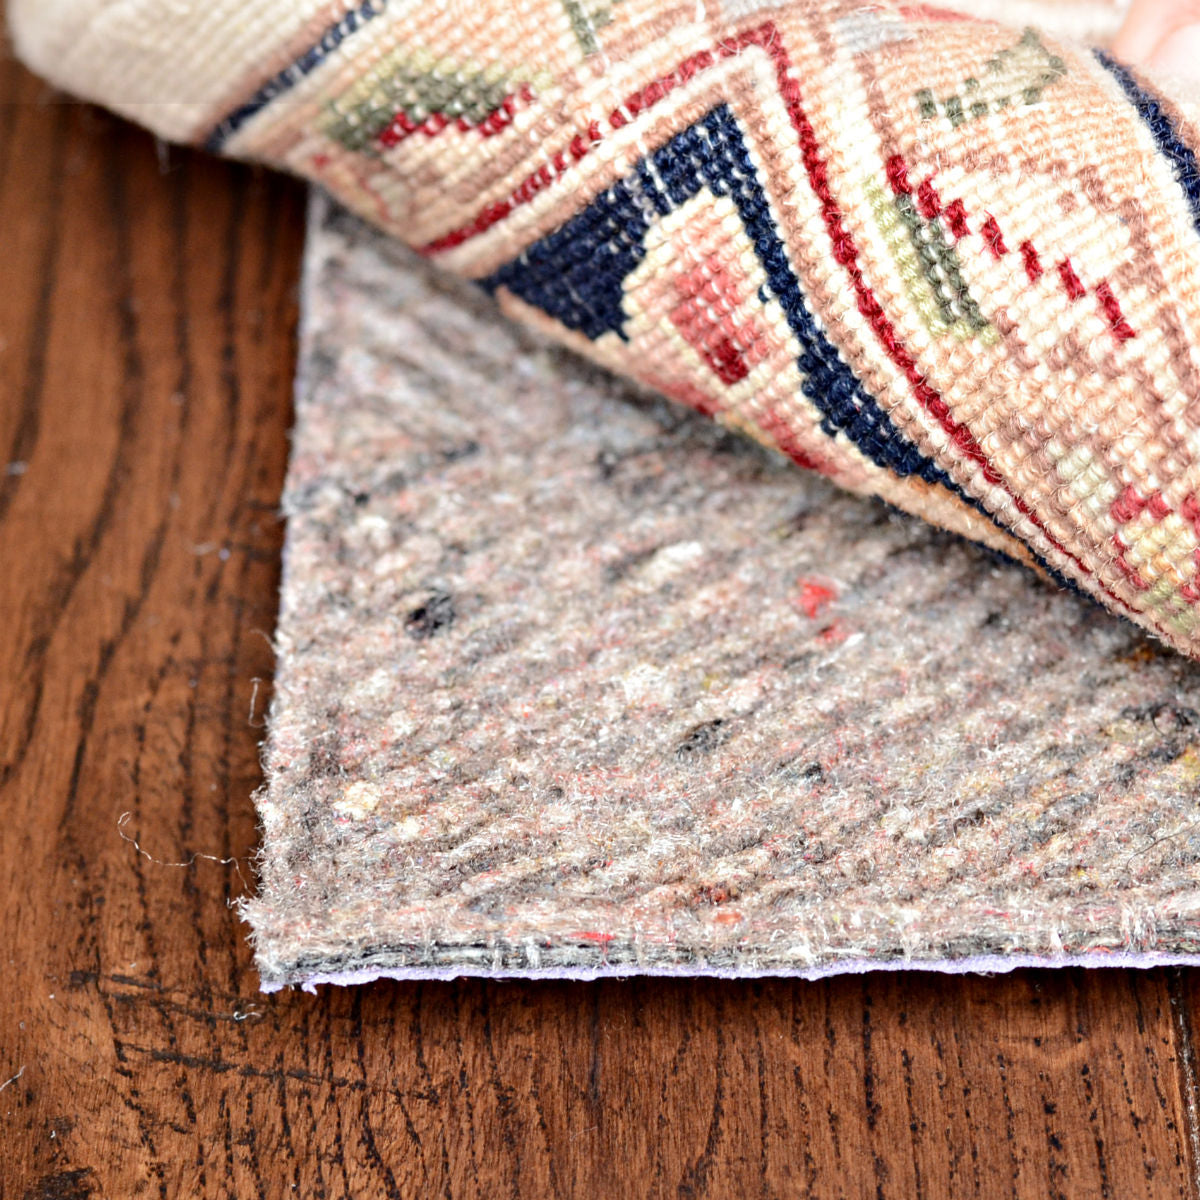 x mat non area extra rugs safe any and slip thick dining amazon epica surface for hard in kitchen rug dp keeps mats place pad com your floor under